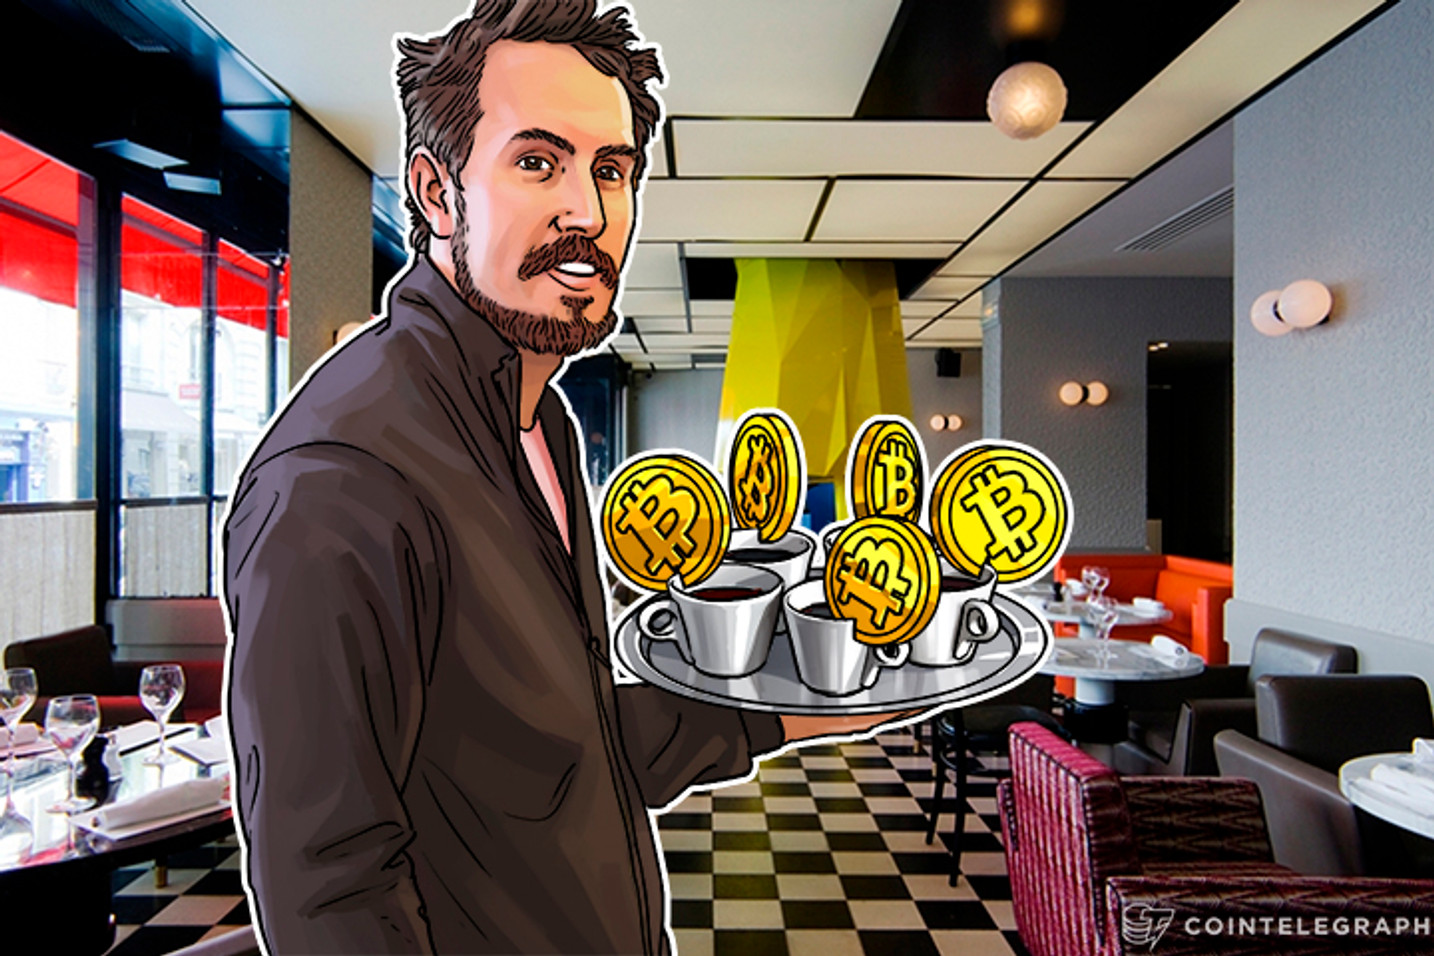 Major Franchise Installs 11 Bitcoin ATMs in Cafes Across Canada